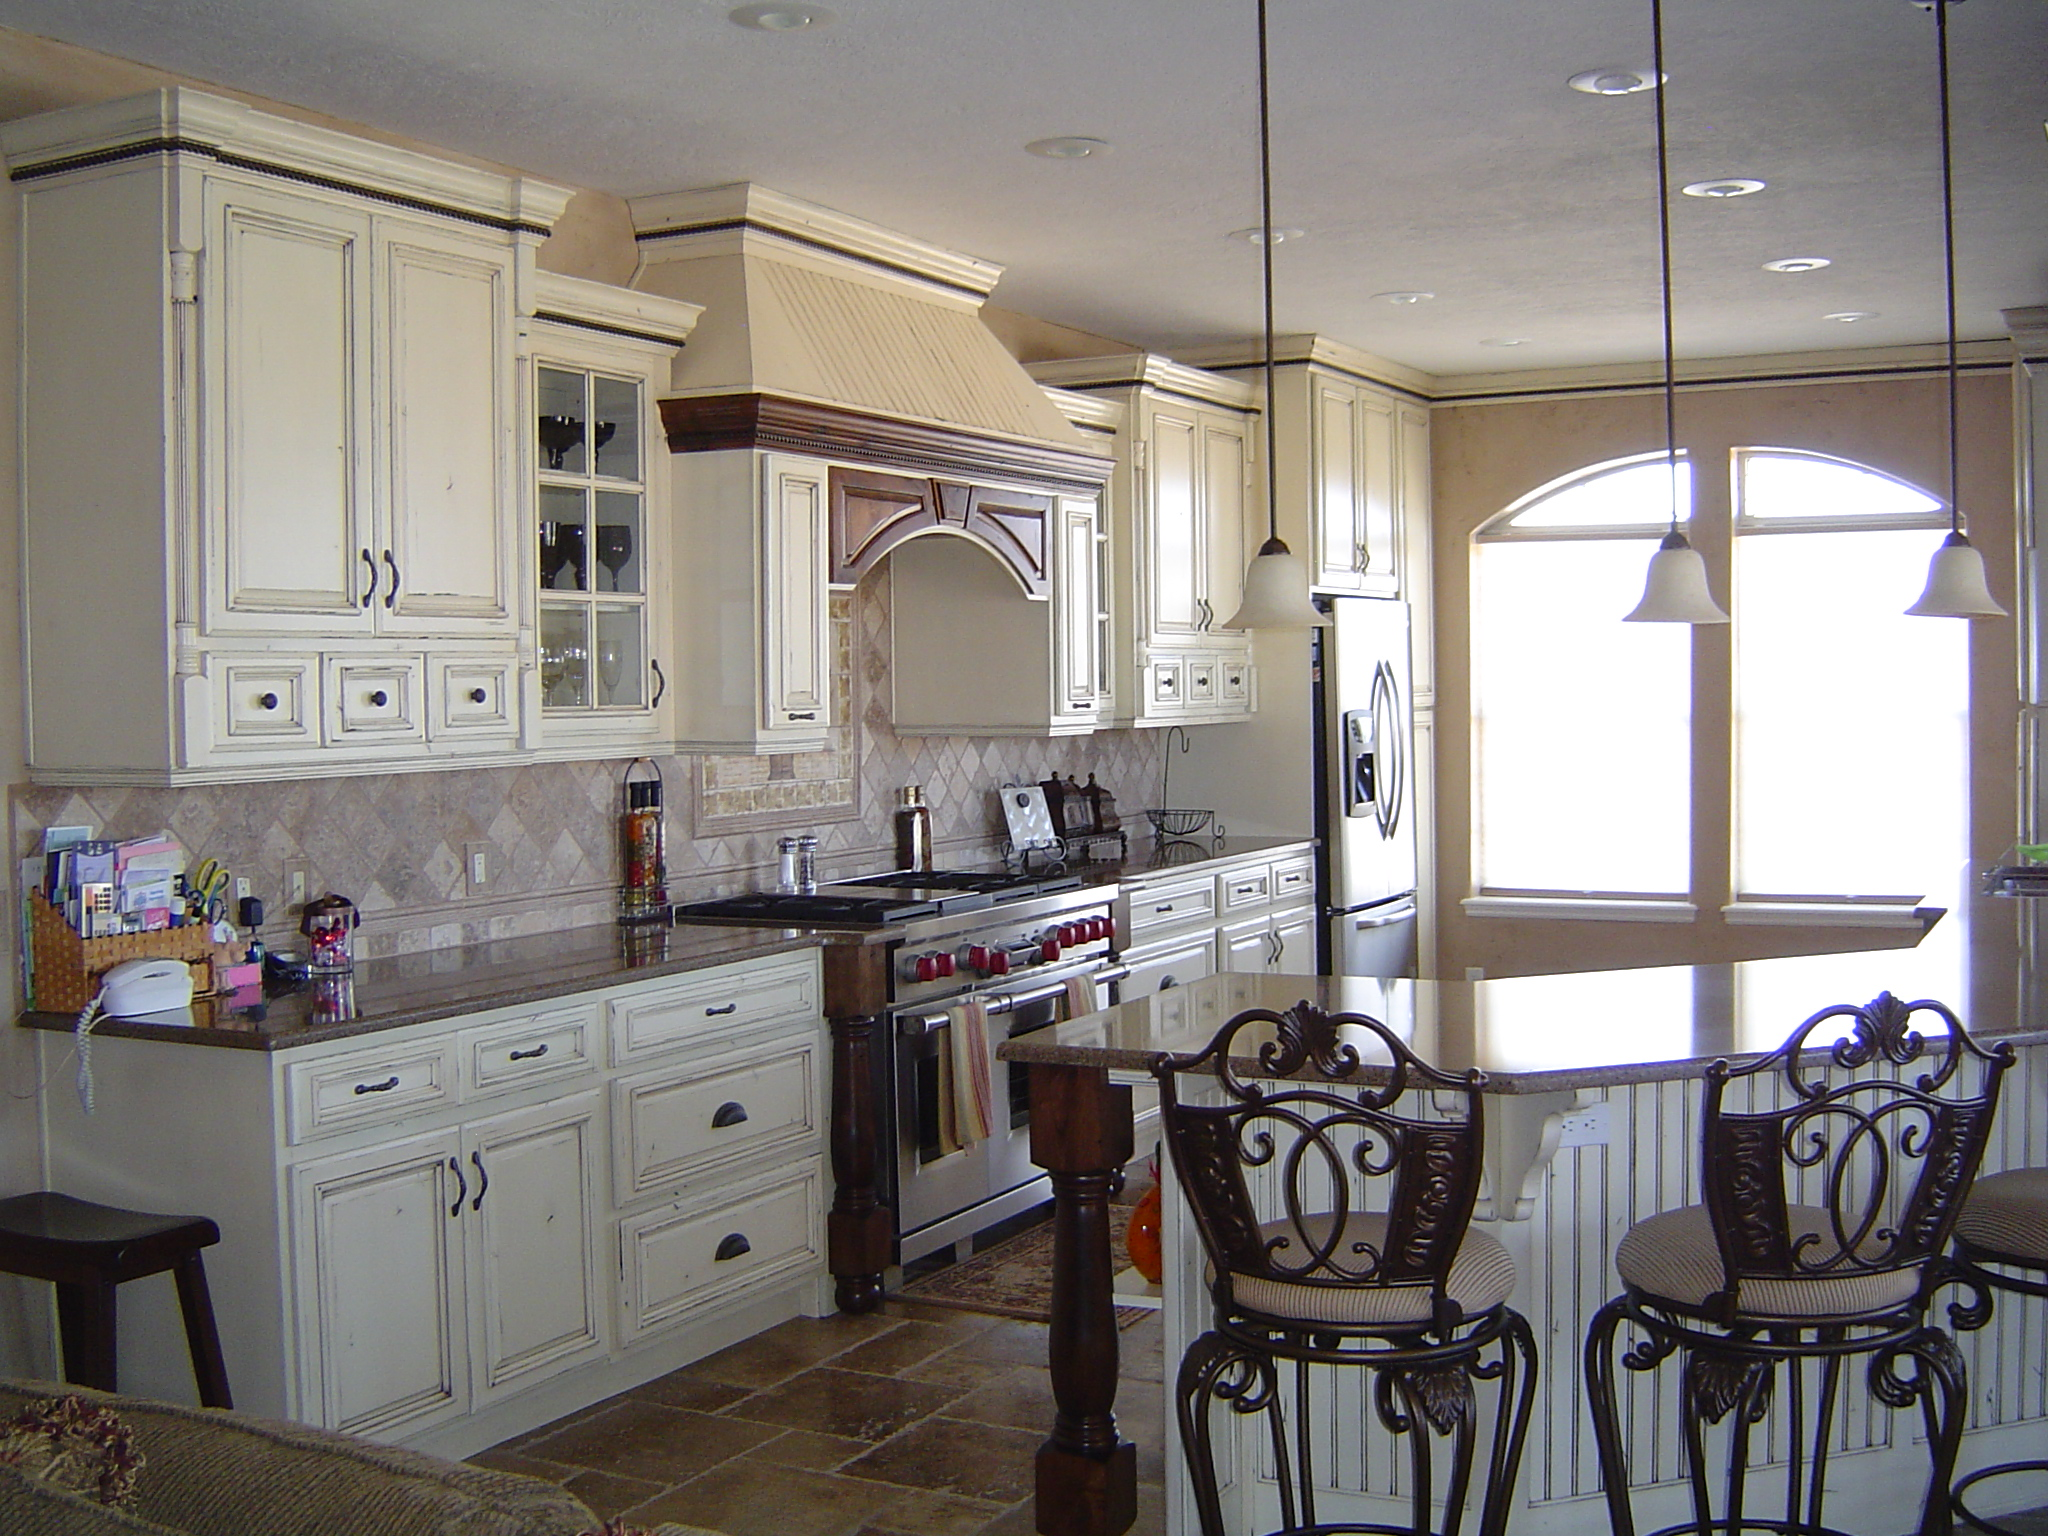 Fullsize Of Country Kitchen Cabinet Designs